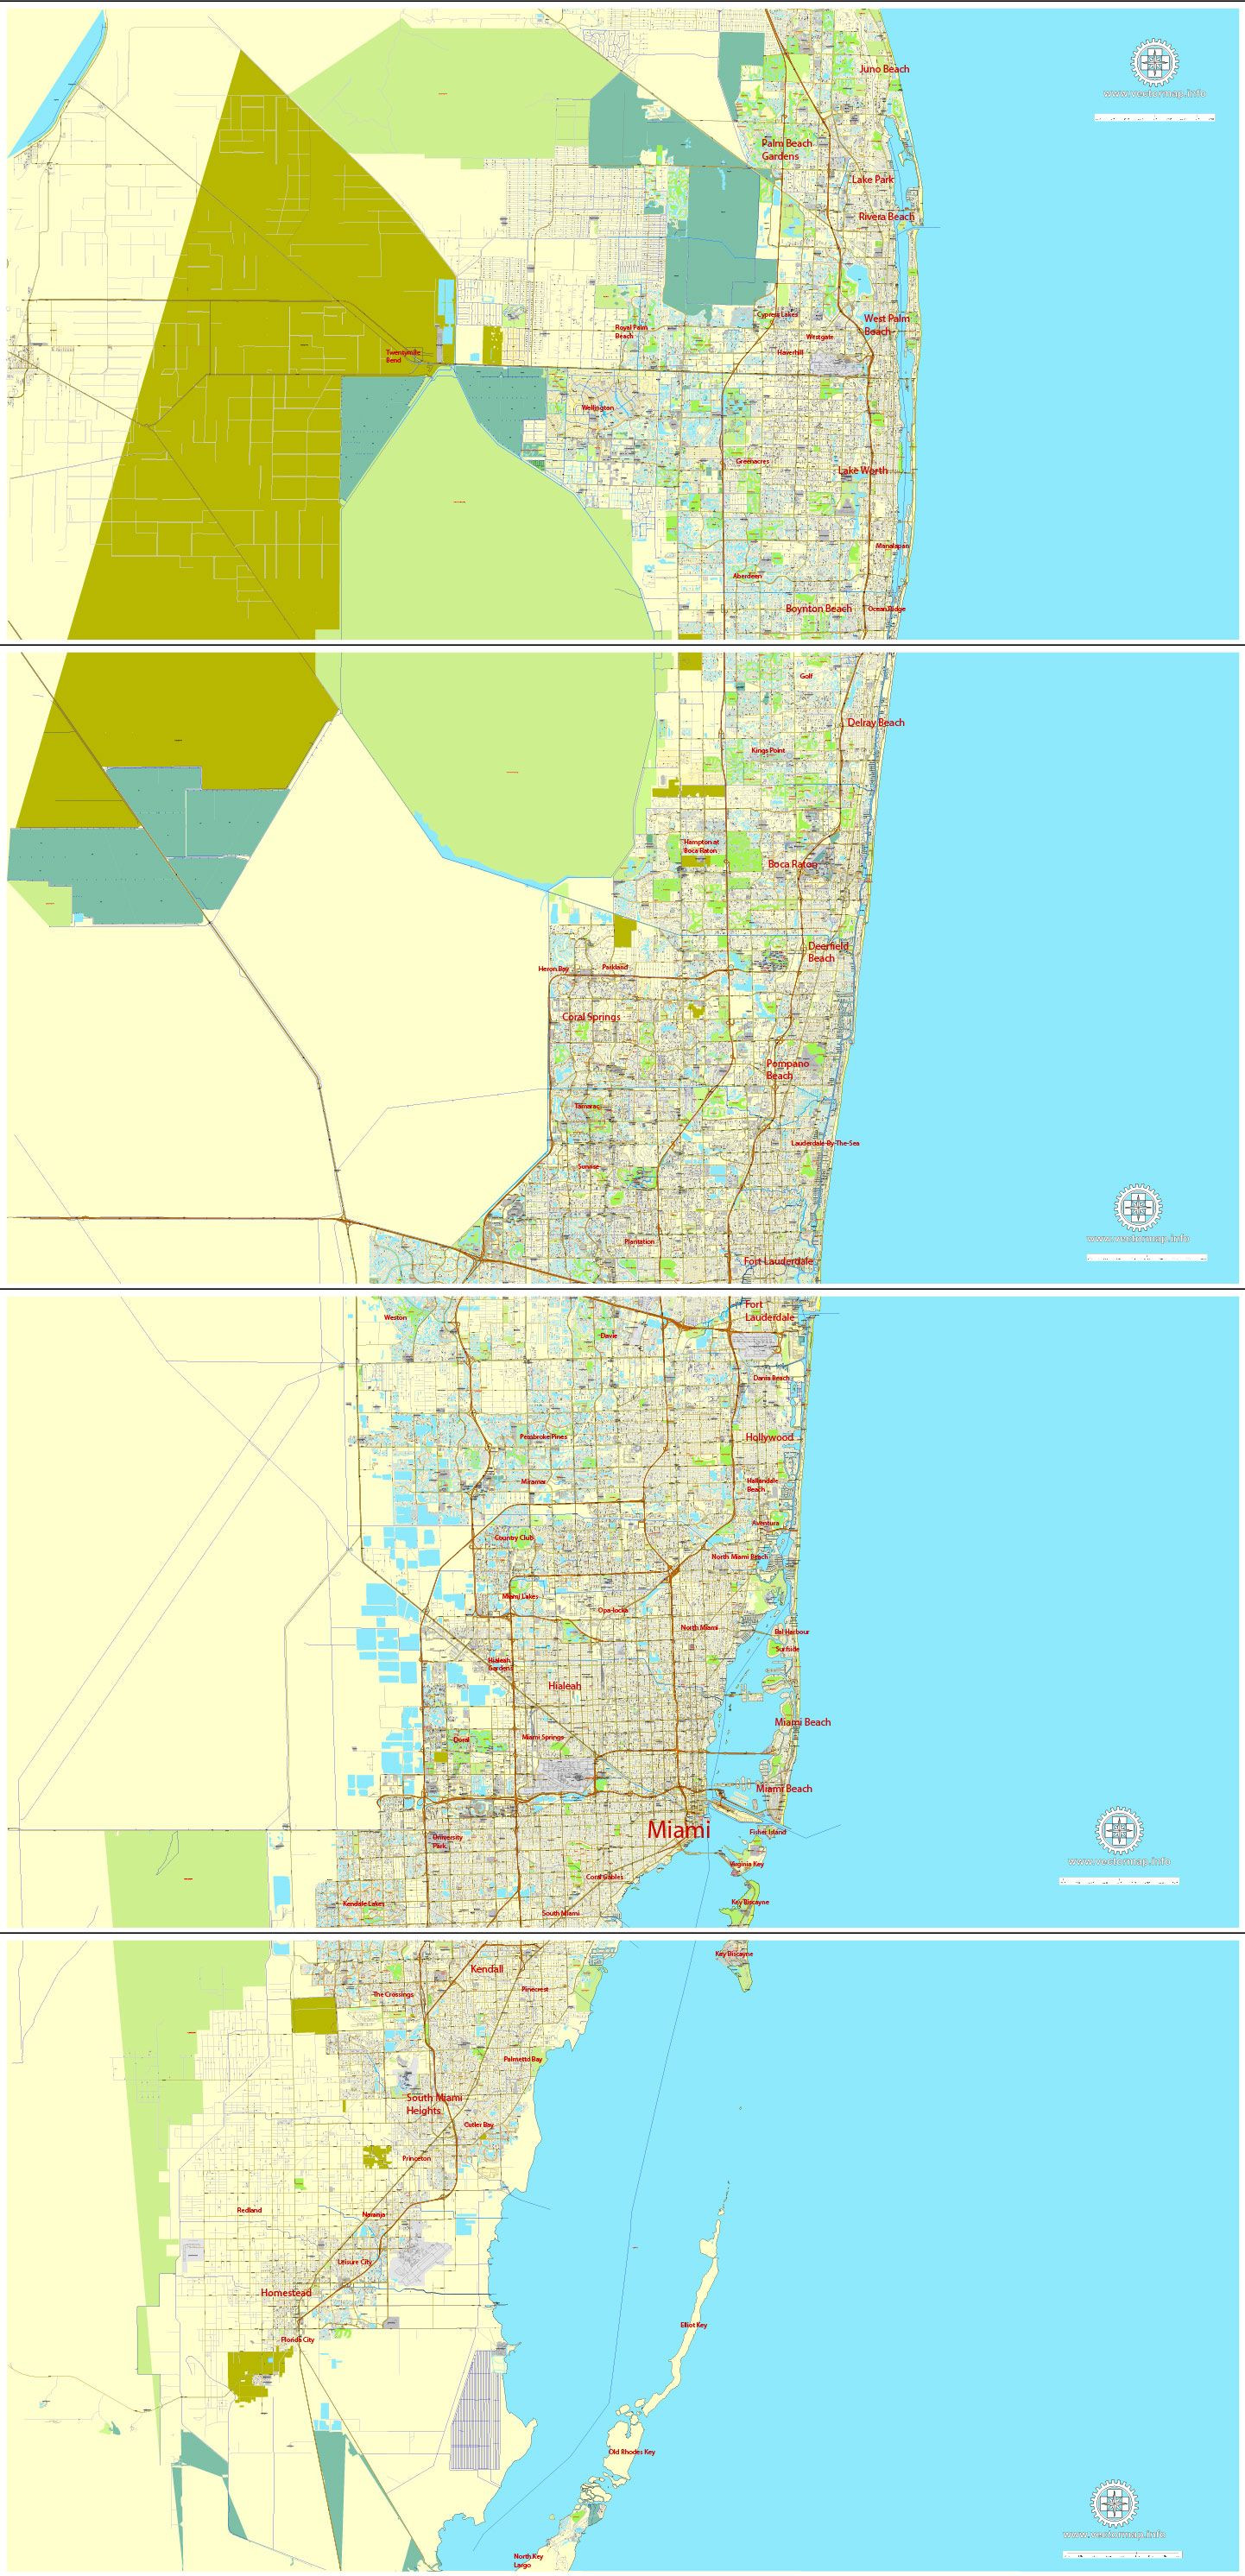 Printable Map Florida Luxury City Map Miami Vector Urban Plan Adobe Illustrator Editable Street